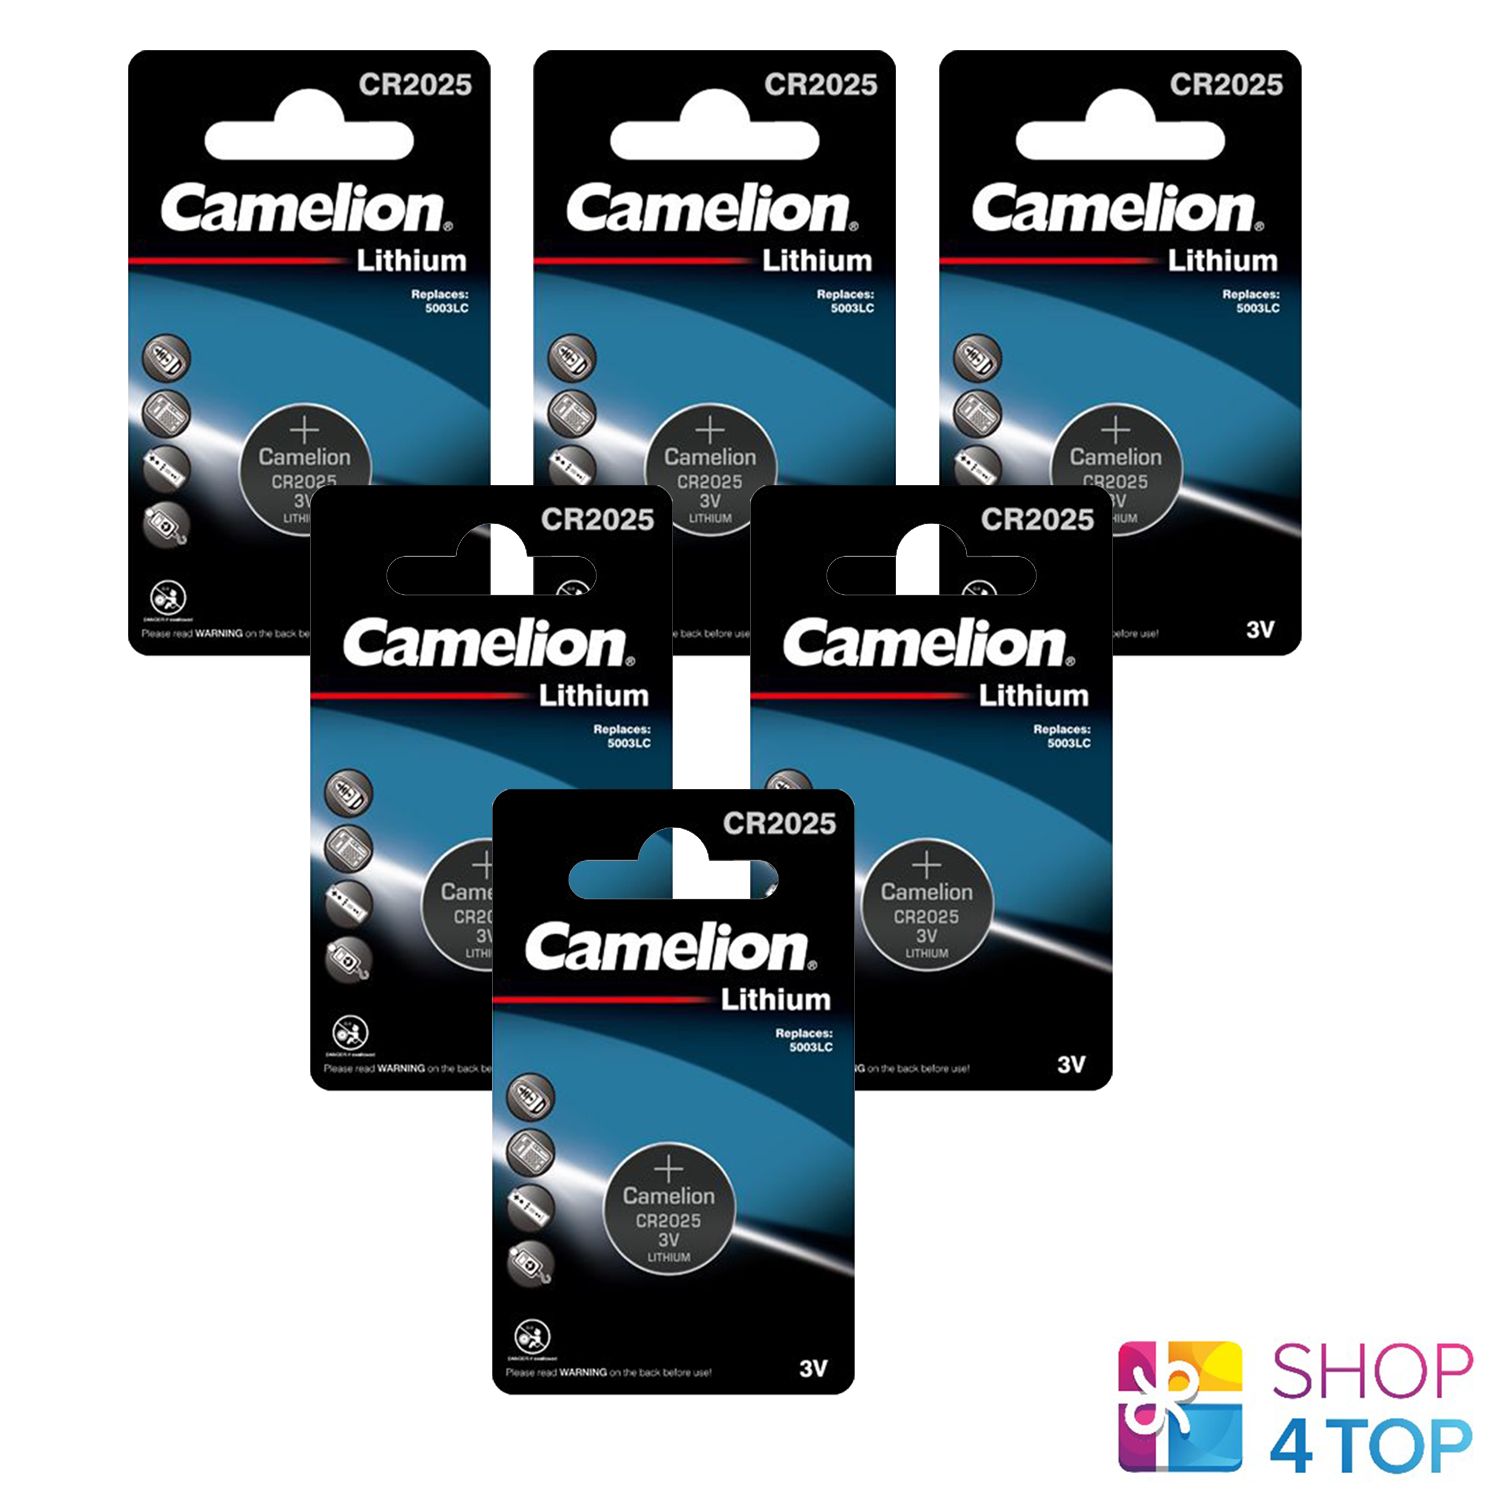 6 Camelion CR2025 Batteries Lithium 150mAh 3 V Coin Cell DL2025 1BL Exp 2028 New